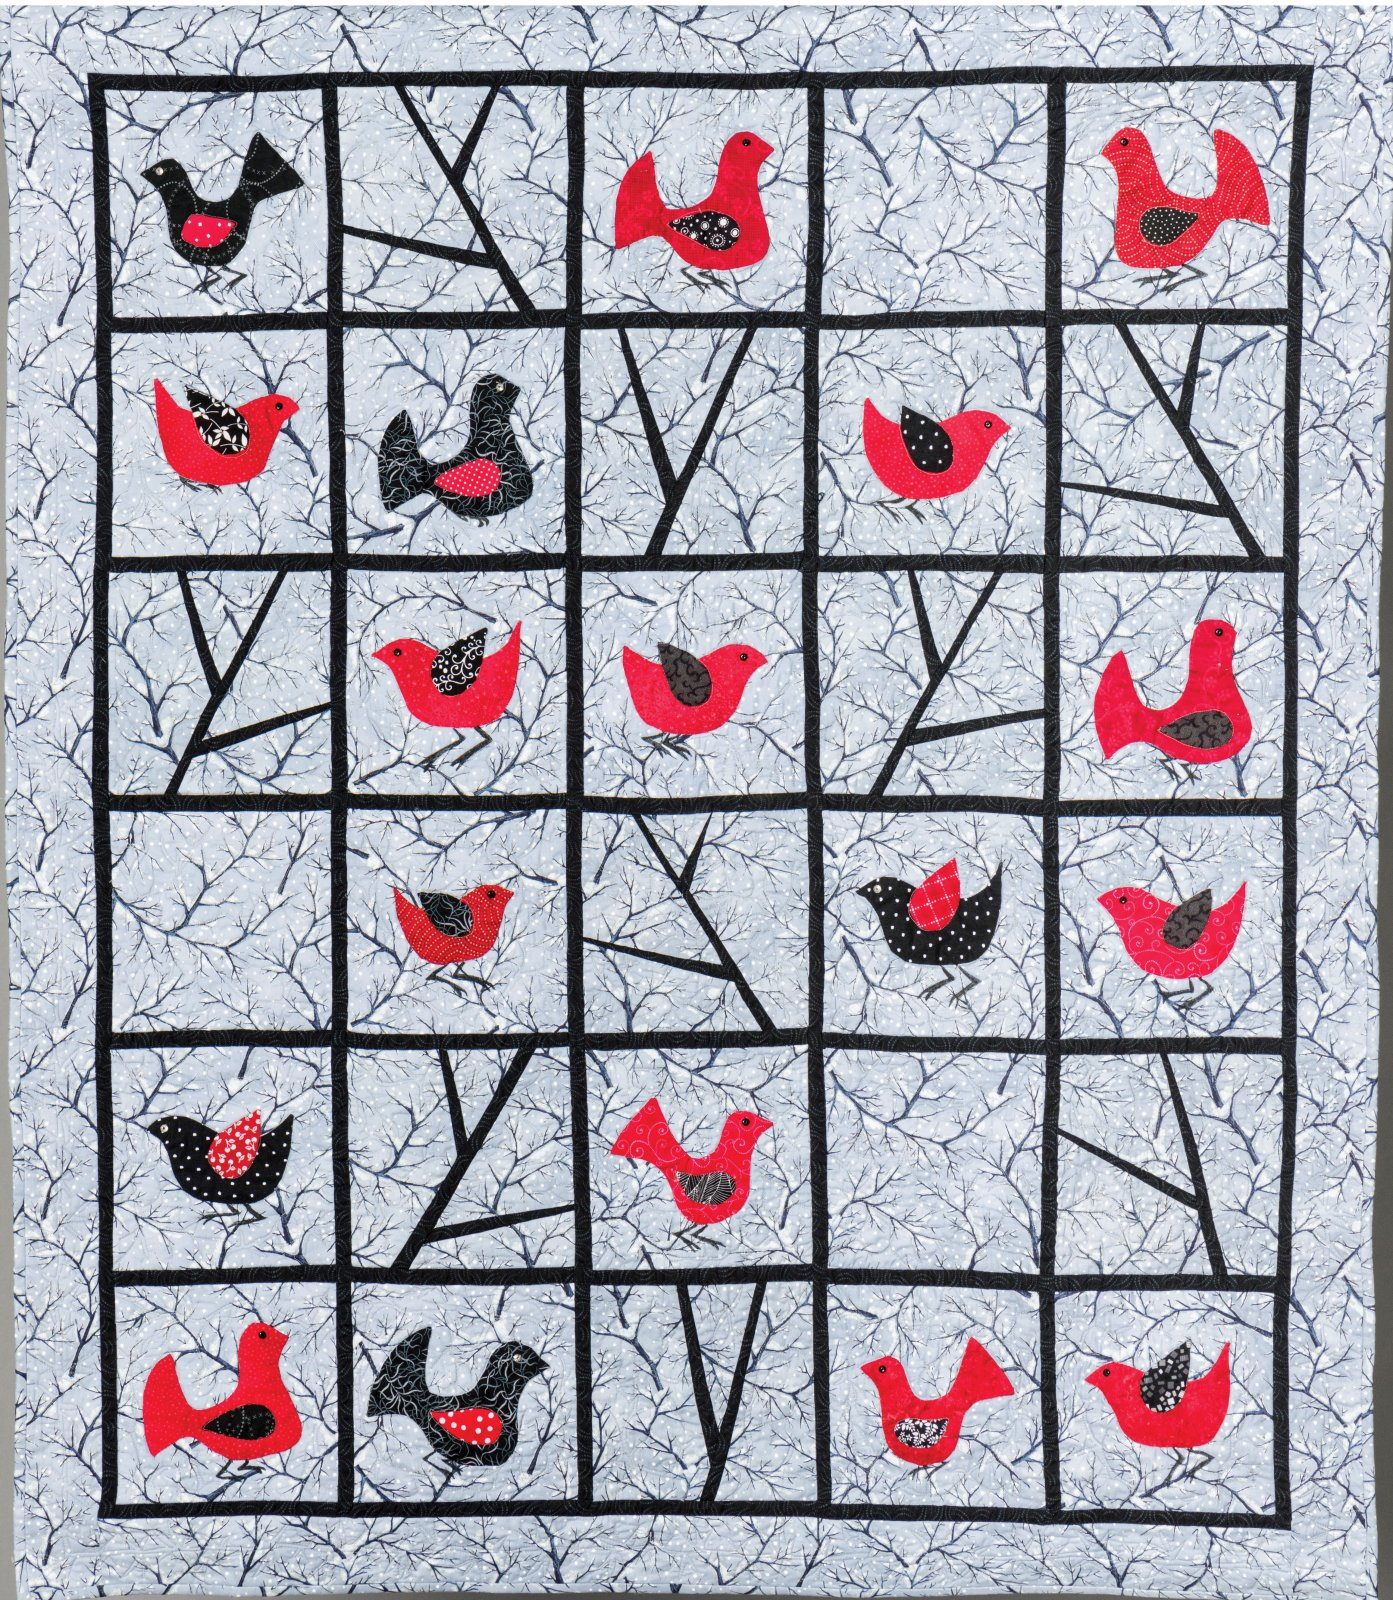 Happy Birds by Evelyn George, Ruth Martin and Elaine Romanelli